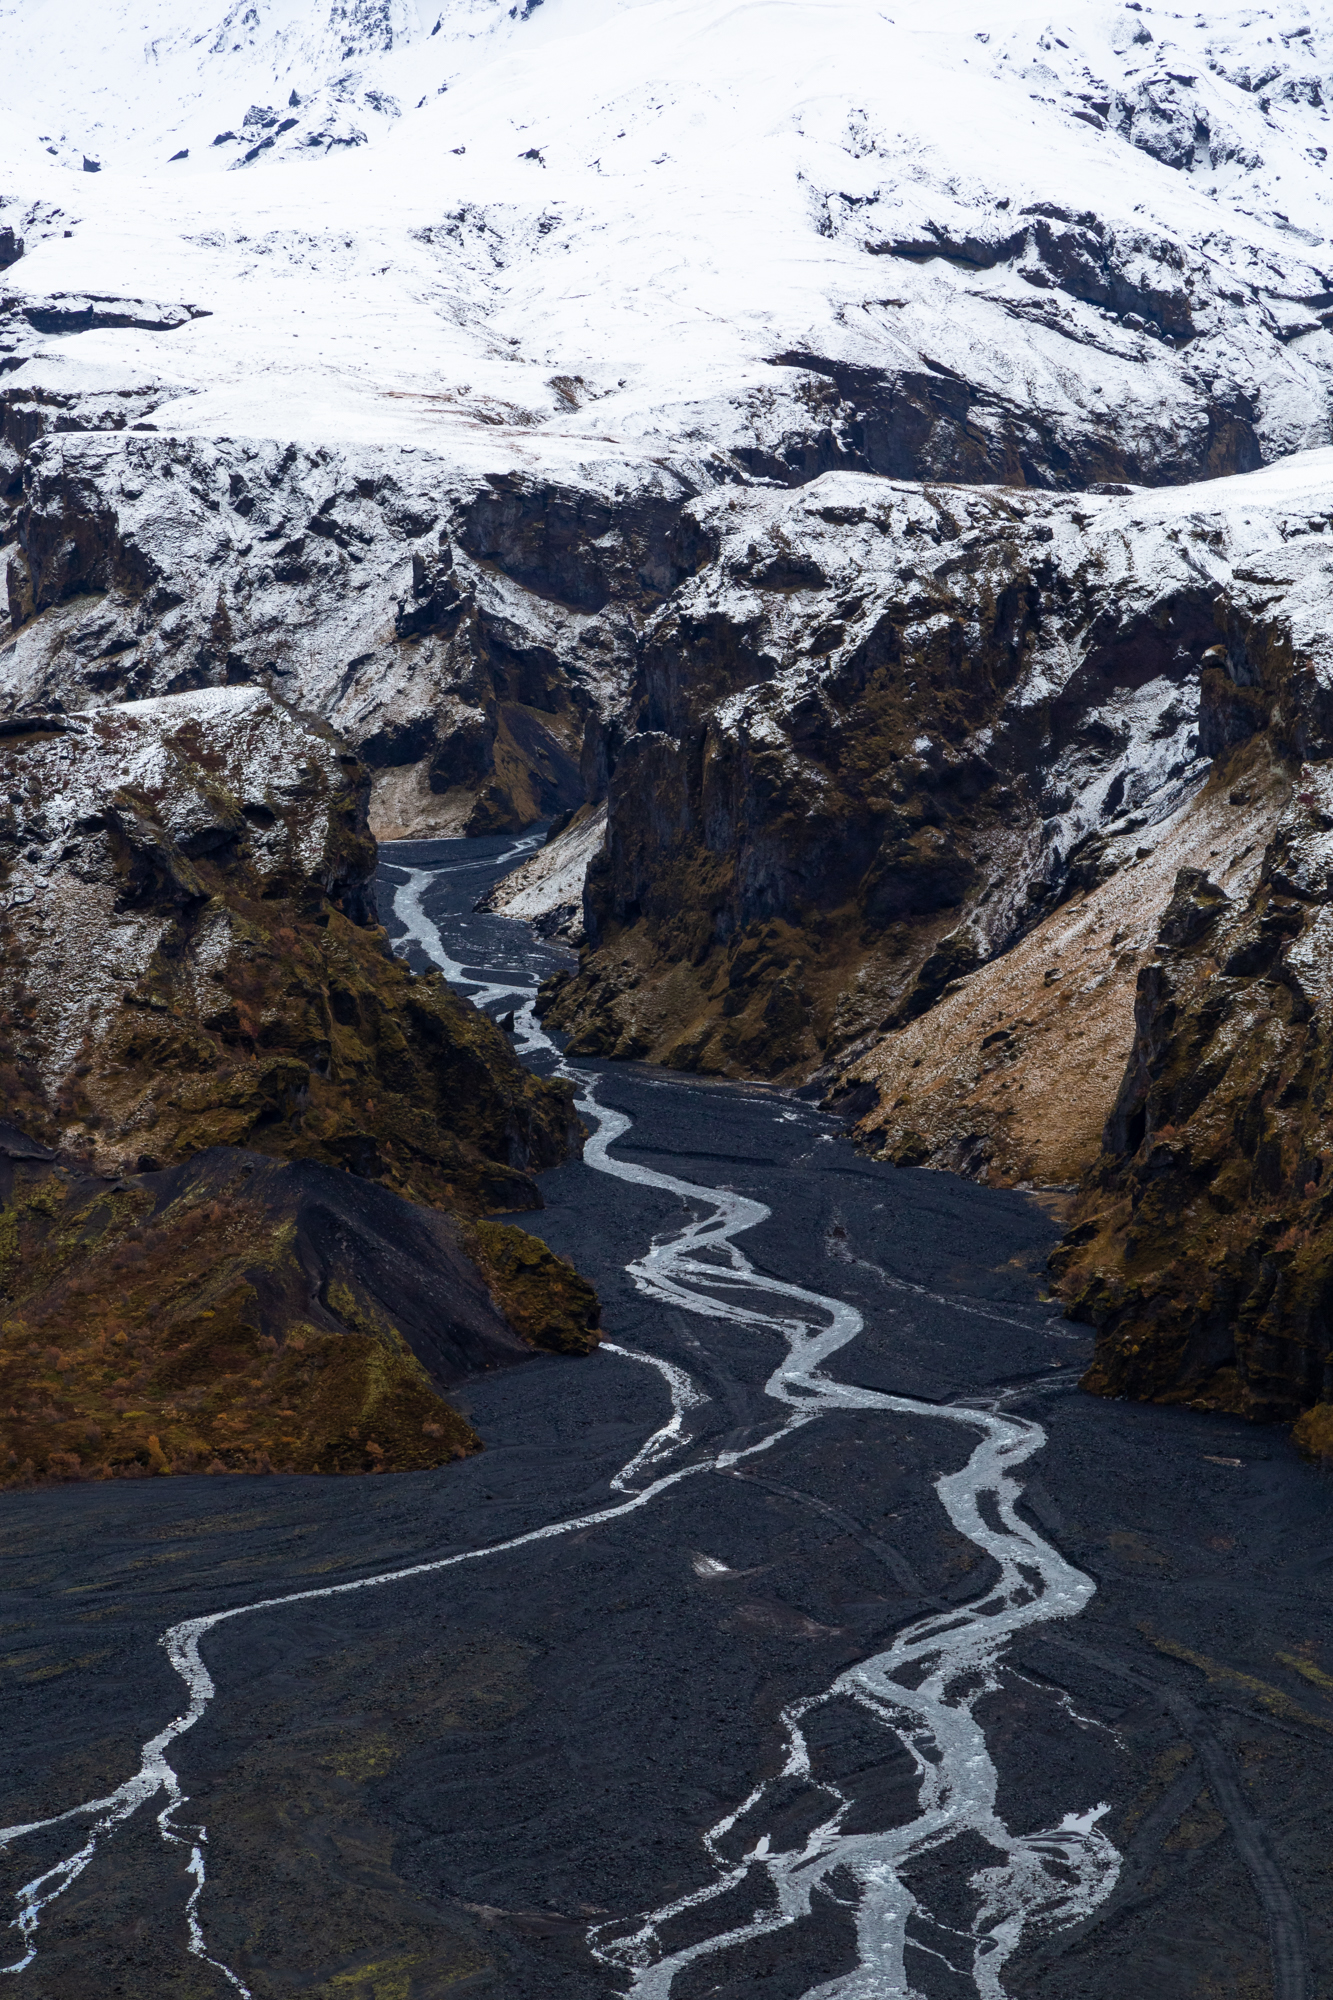 A braided stream pours from the glacier Eyjafjallajökull (pronounced eh-yaf-yatla-yo-kutl) that sits atop the volcano that famously erupted in 2010 and stoped air-travel over the Atlantic and mainland Europe. The unique combination of abundant volcanoes and glaciers in Iceland makes it a dramatic and rapidly changing landscape unlike any other on earth. As the glaciers in Iceland disappear this strange dynamic is becoming even more complex.